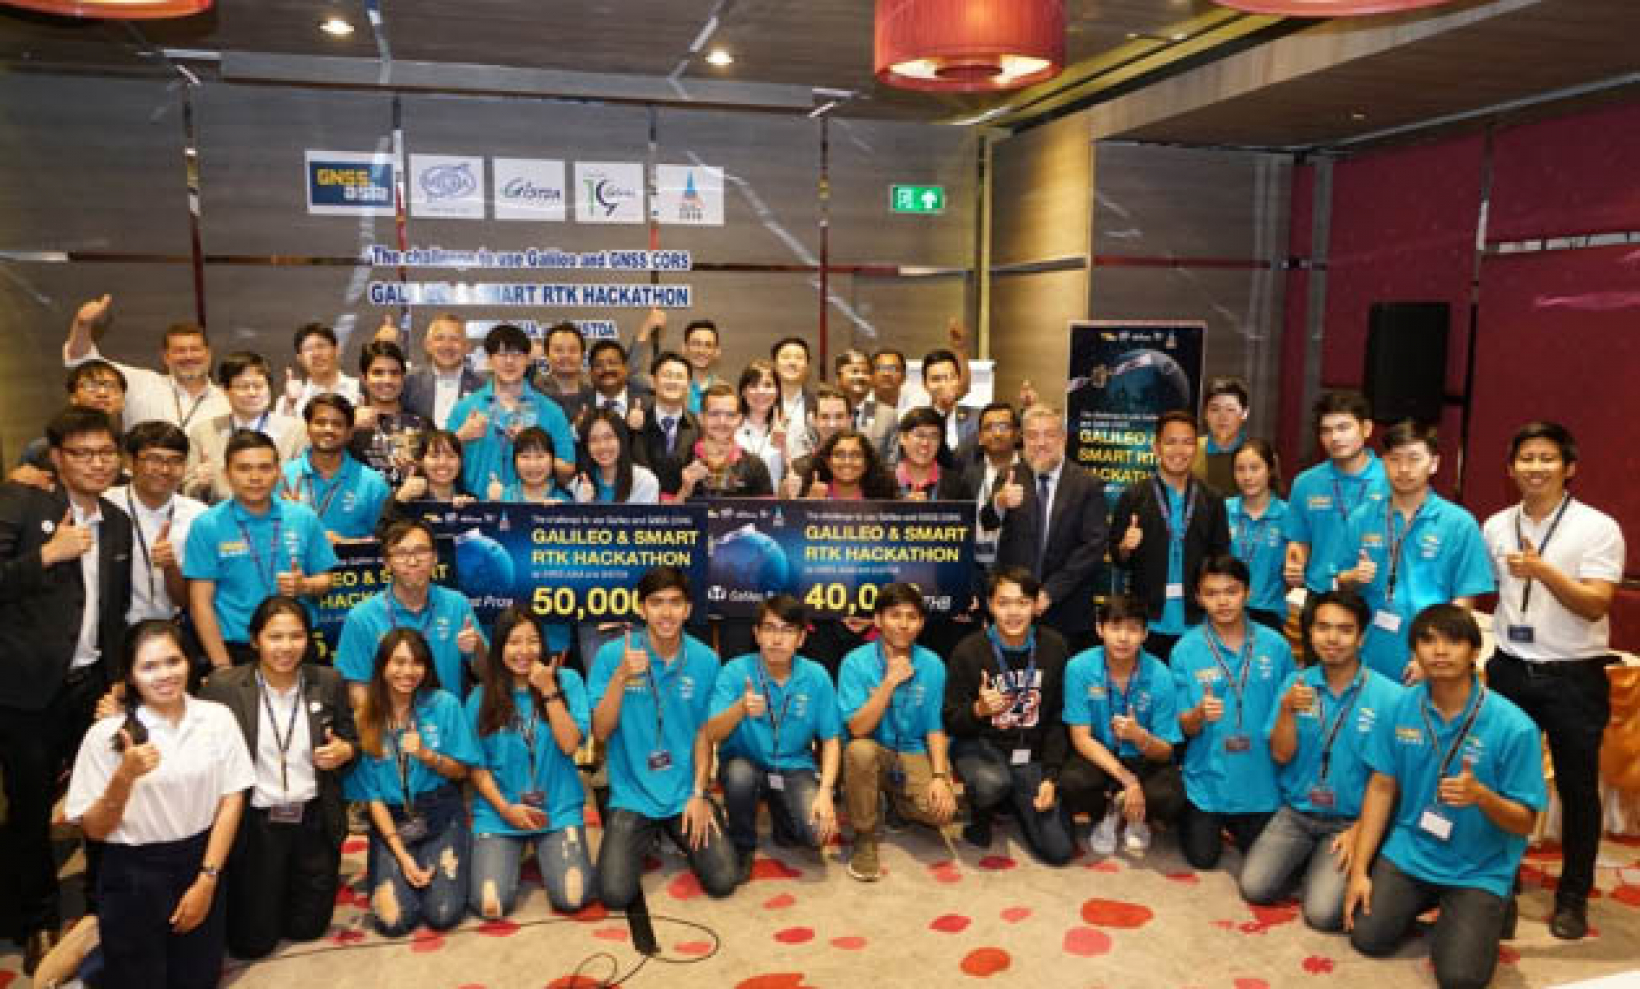 The hackathon brought together a large group of participants from a wide range of disciplines.